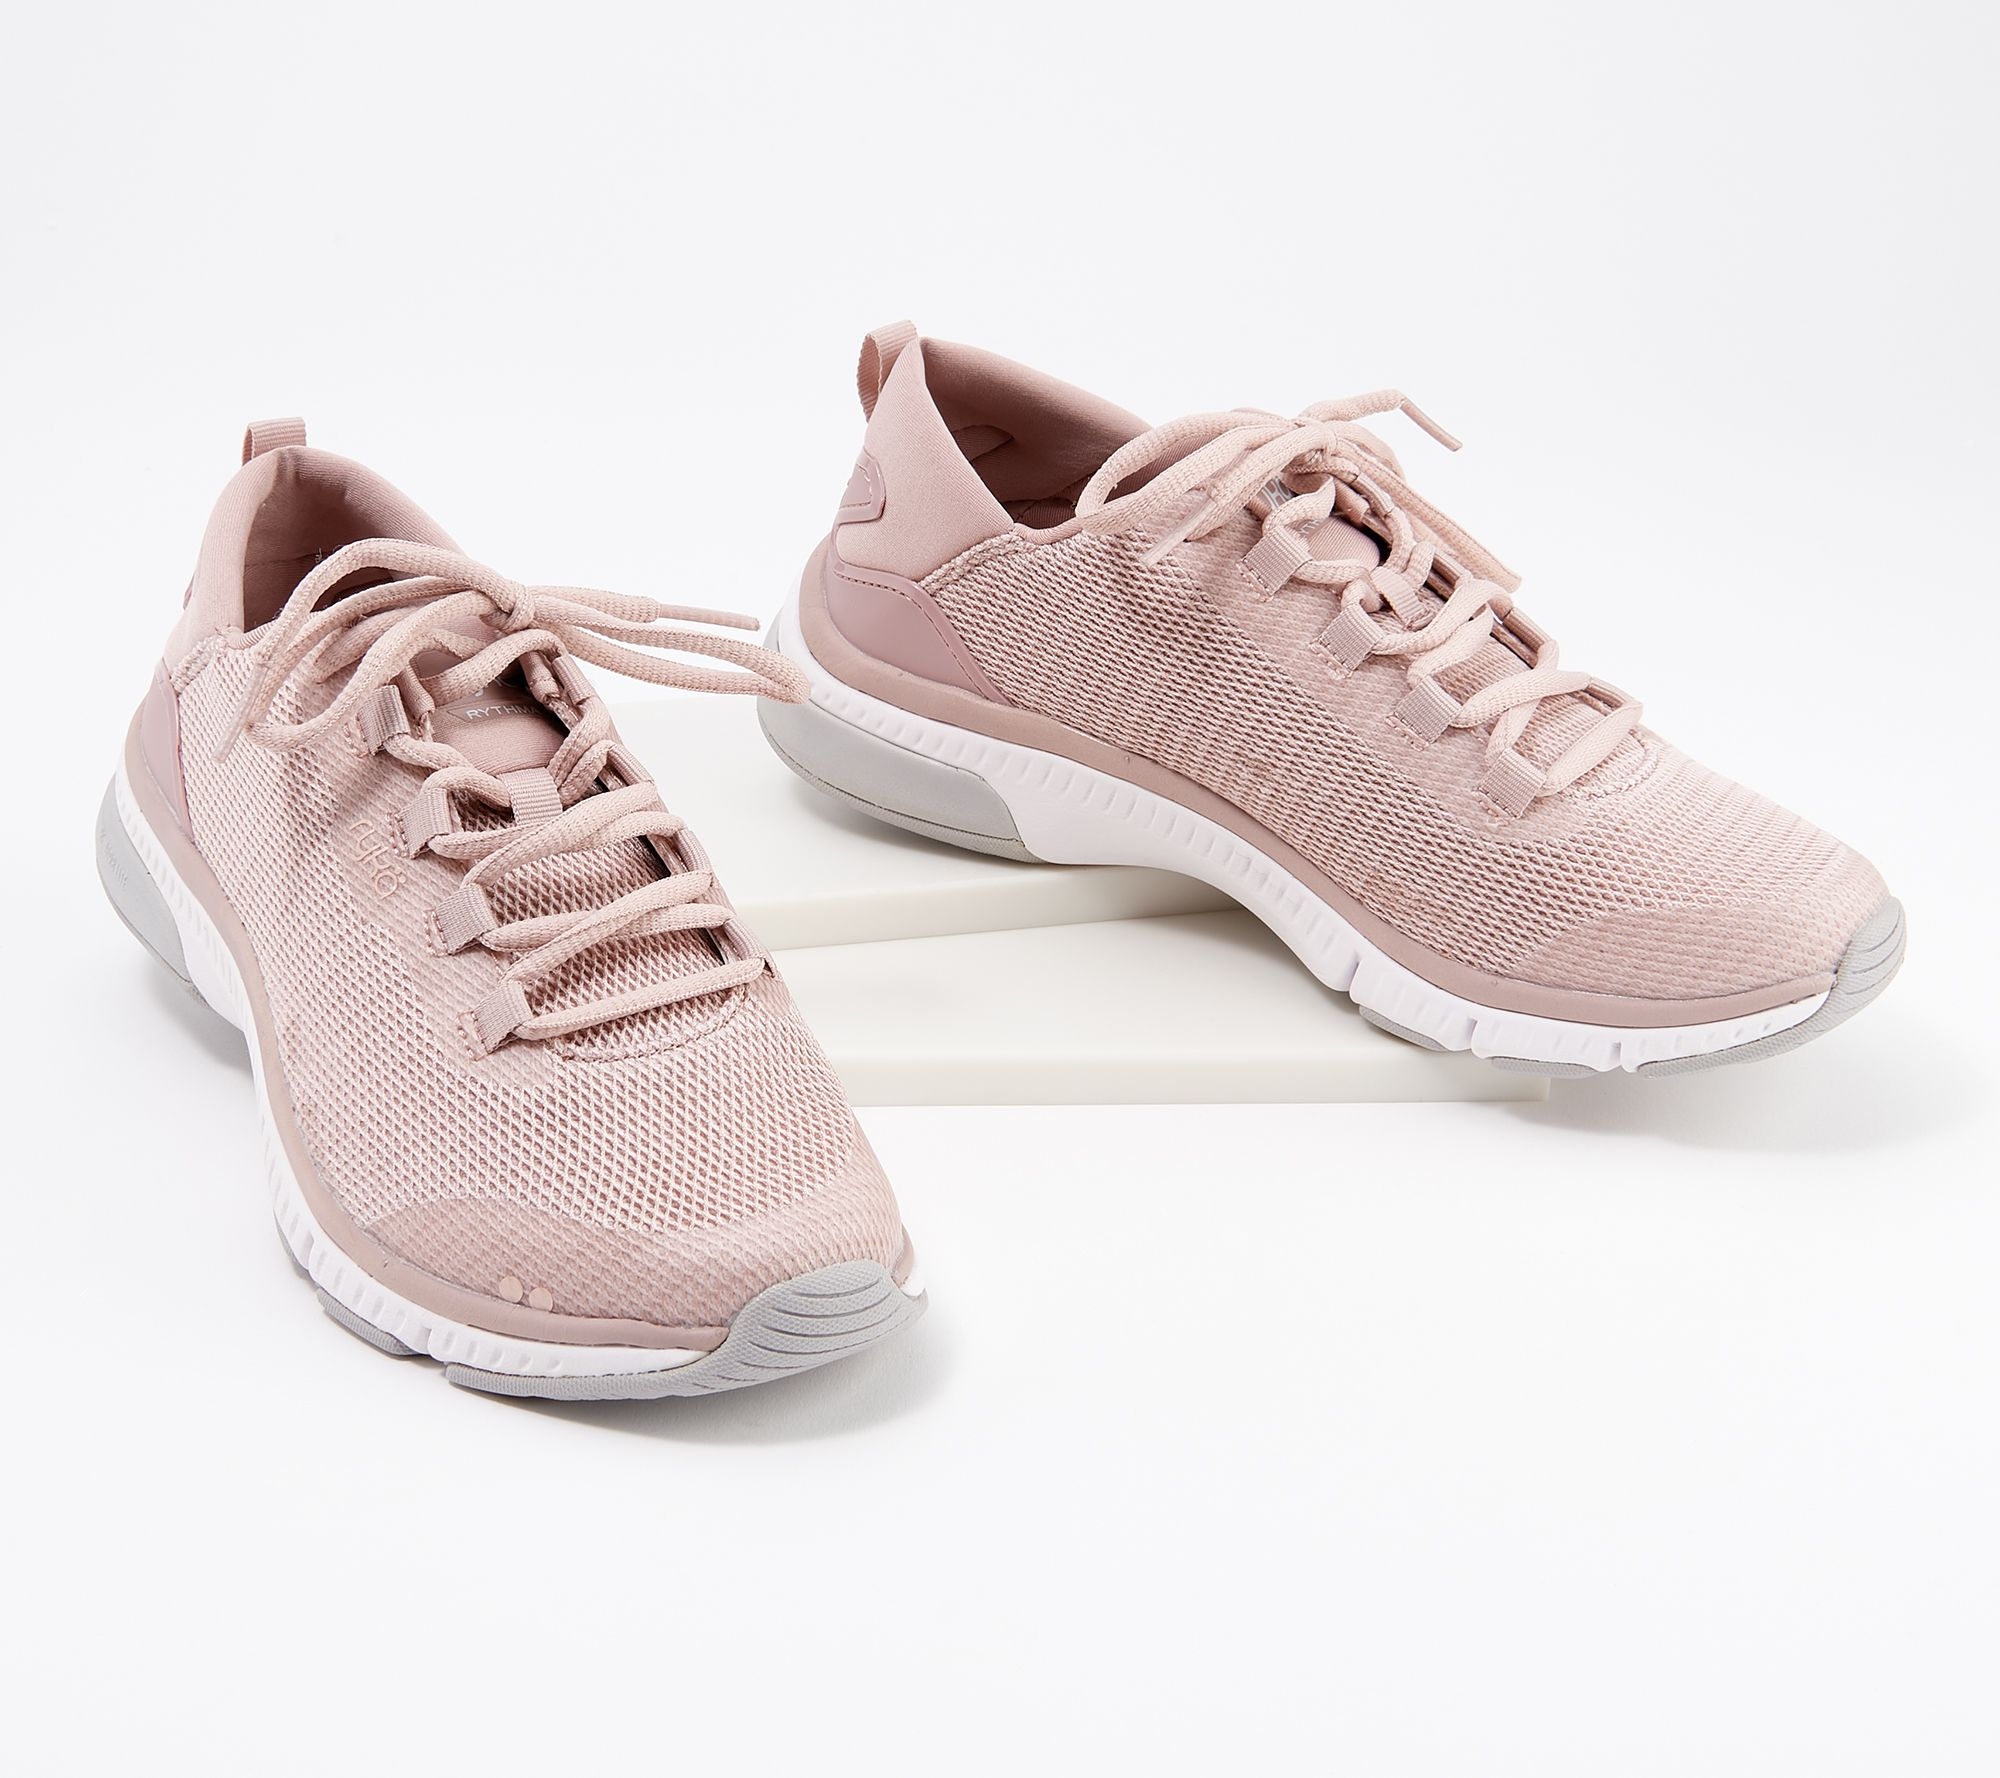 SUNNY Store Womens Comfortable Platform Walking Sneakers Lightweight Casual Tennis Air Fitness Shoes